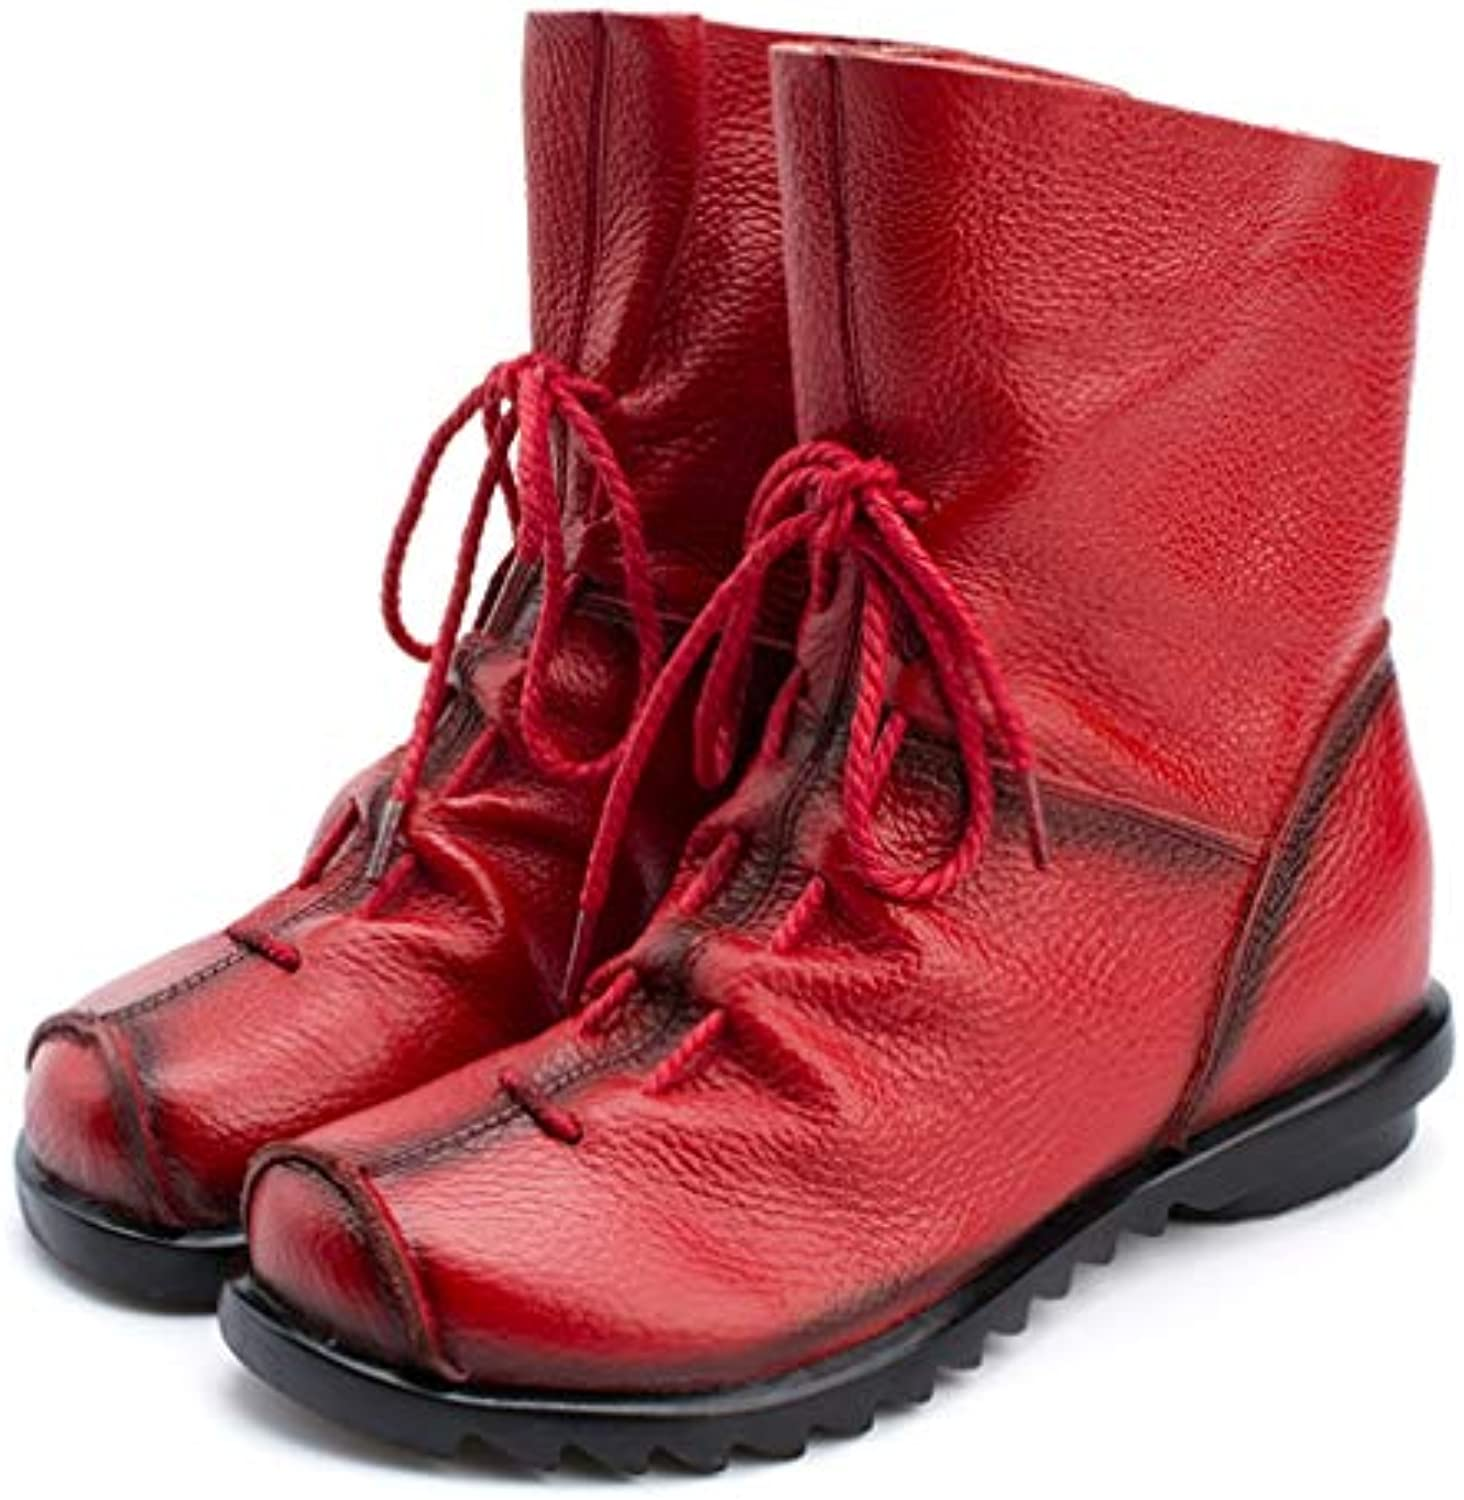 T-JULY Women Winter Ankle Boots Round Toe Lace-up Zipper Closure Autumn Ladies shoes Fashion Pui Leather Boots